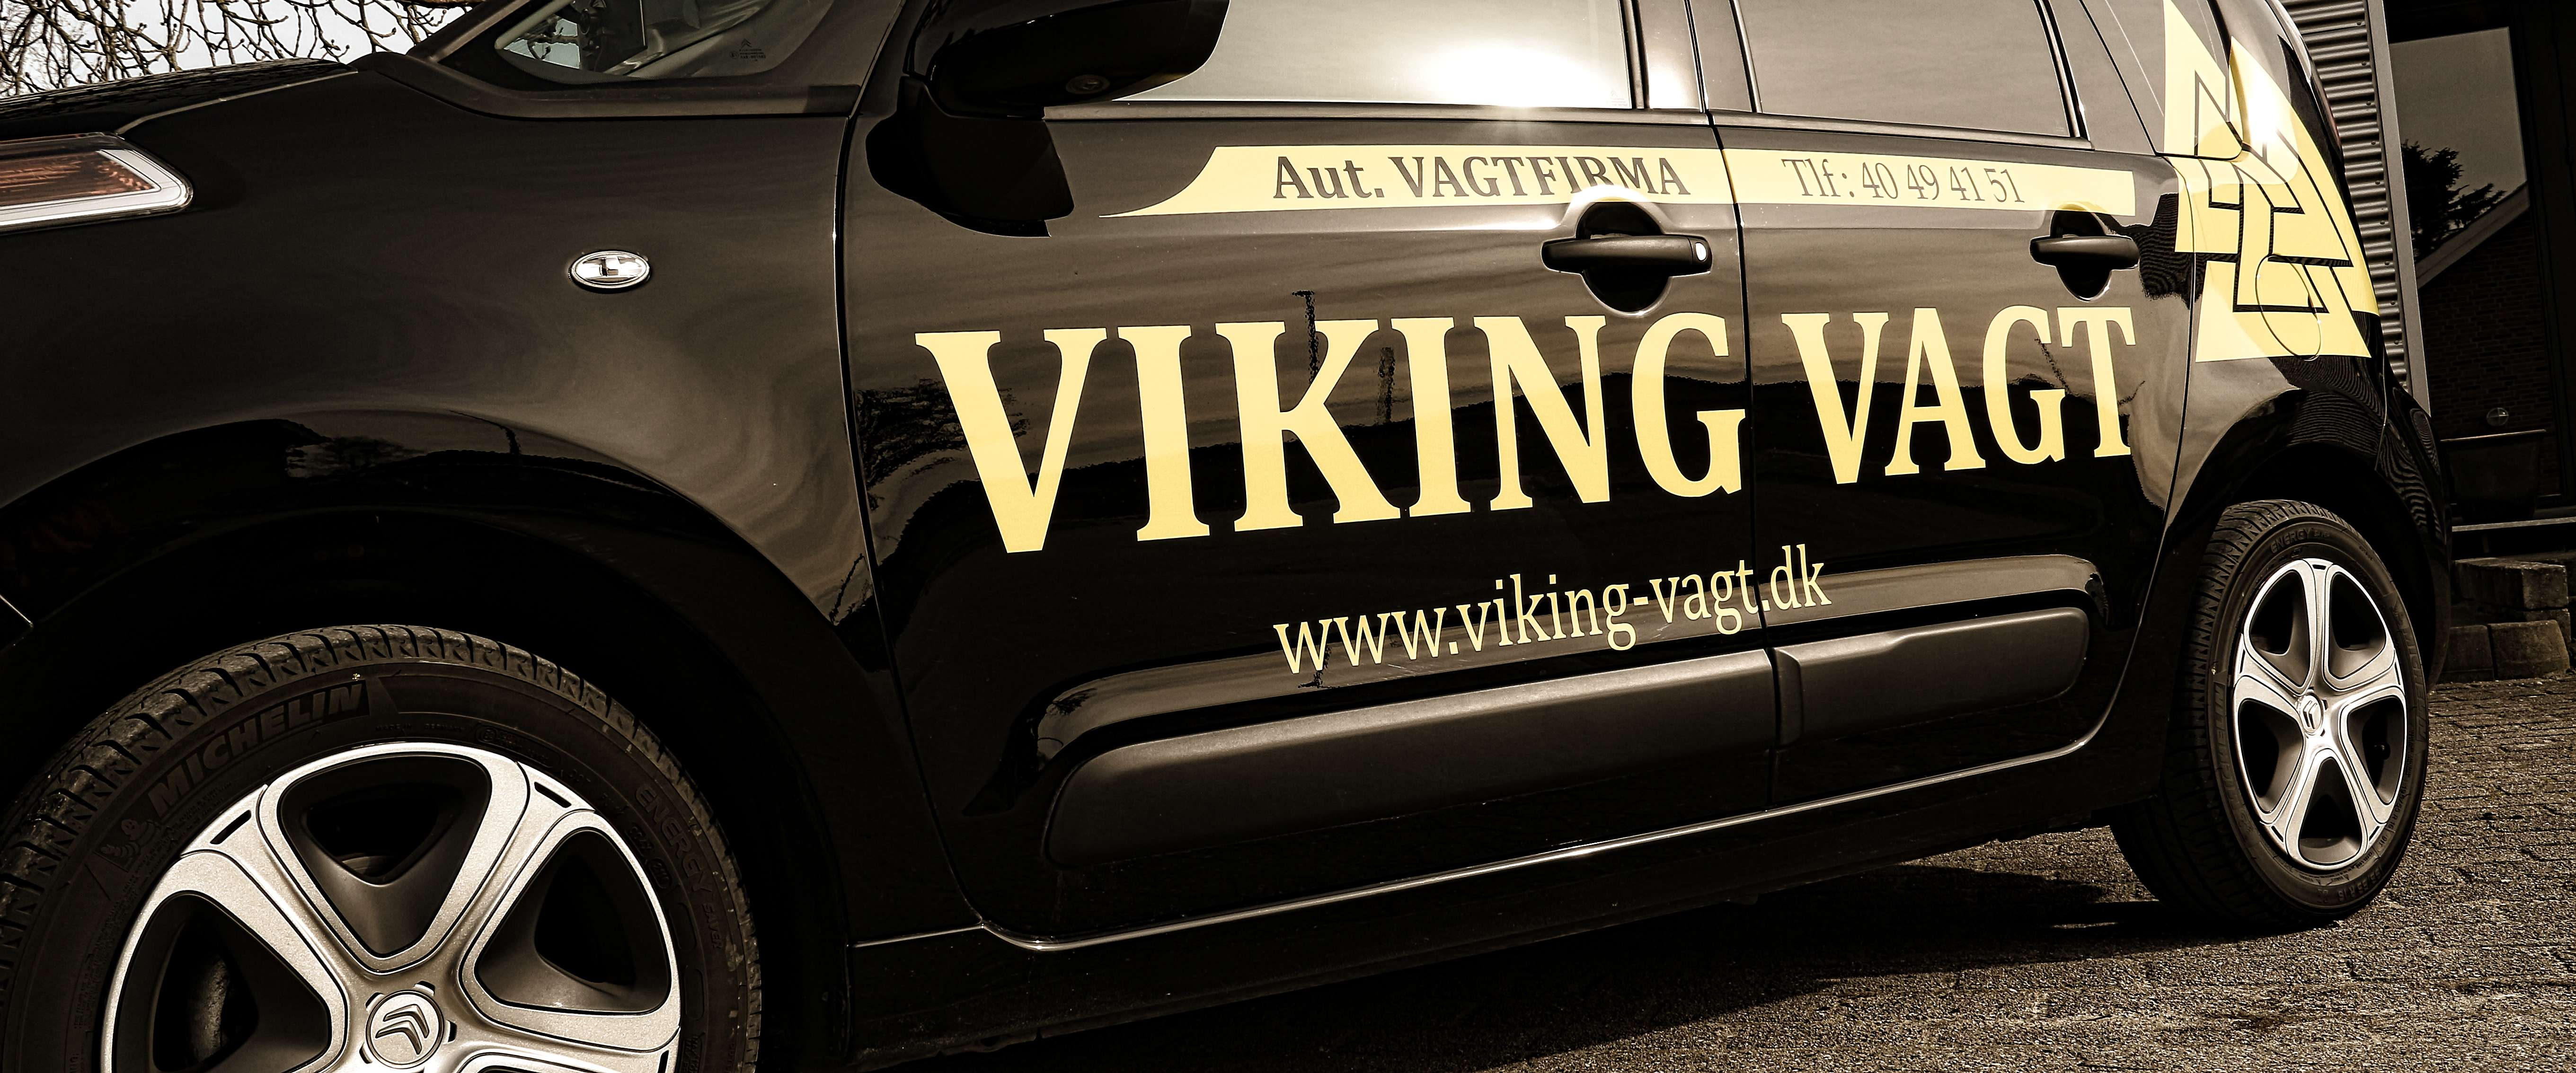 Viking-vagt-firma-4 copy1.jpg